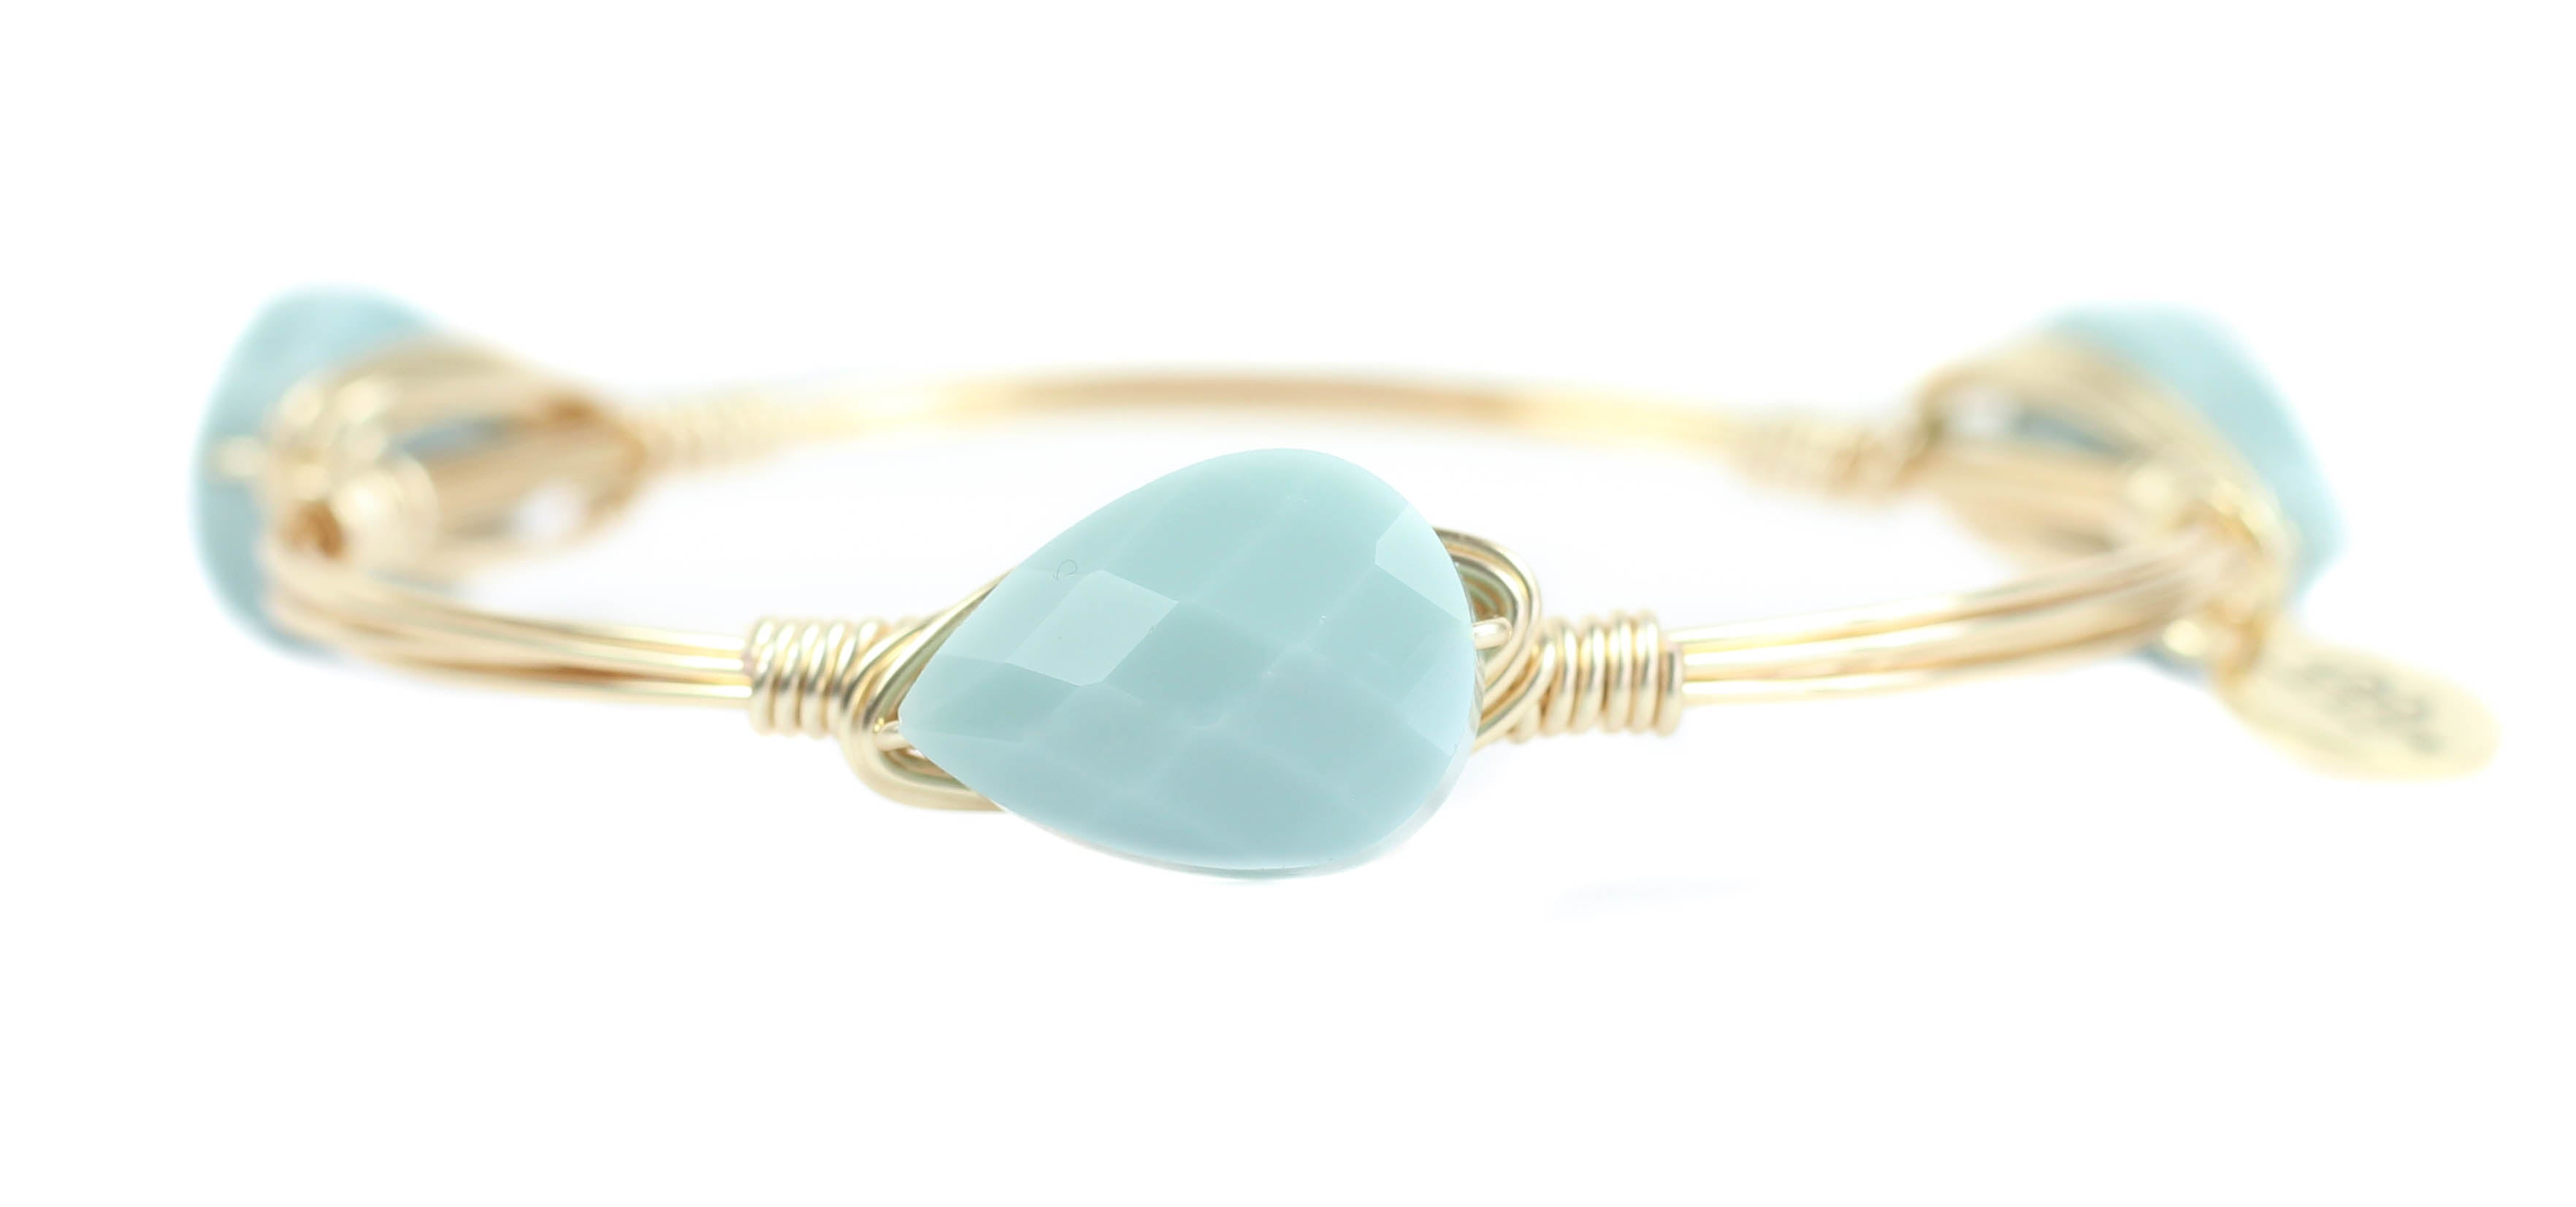 Bracelets Self-Conscious Turquoise Gold Wire Cuff Bracelet Jewelry & Watches